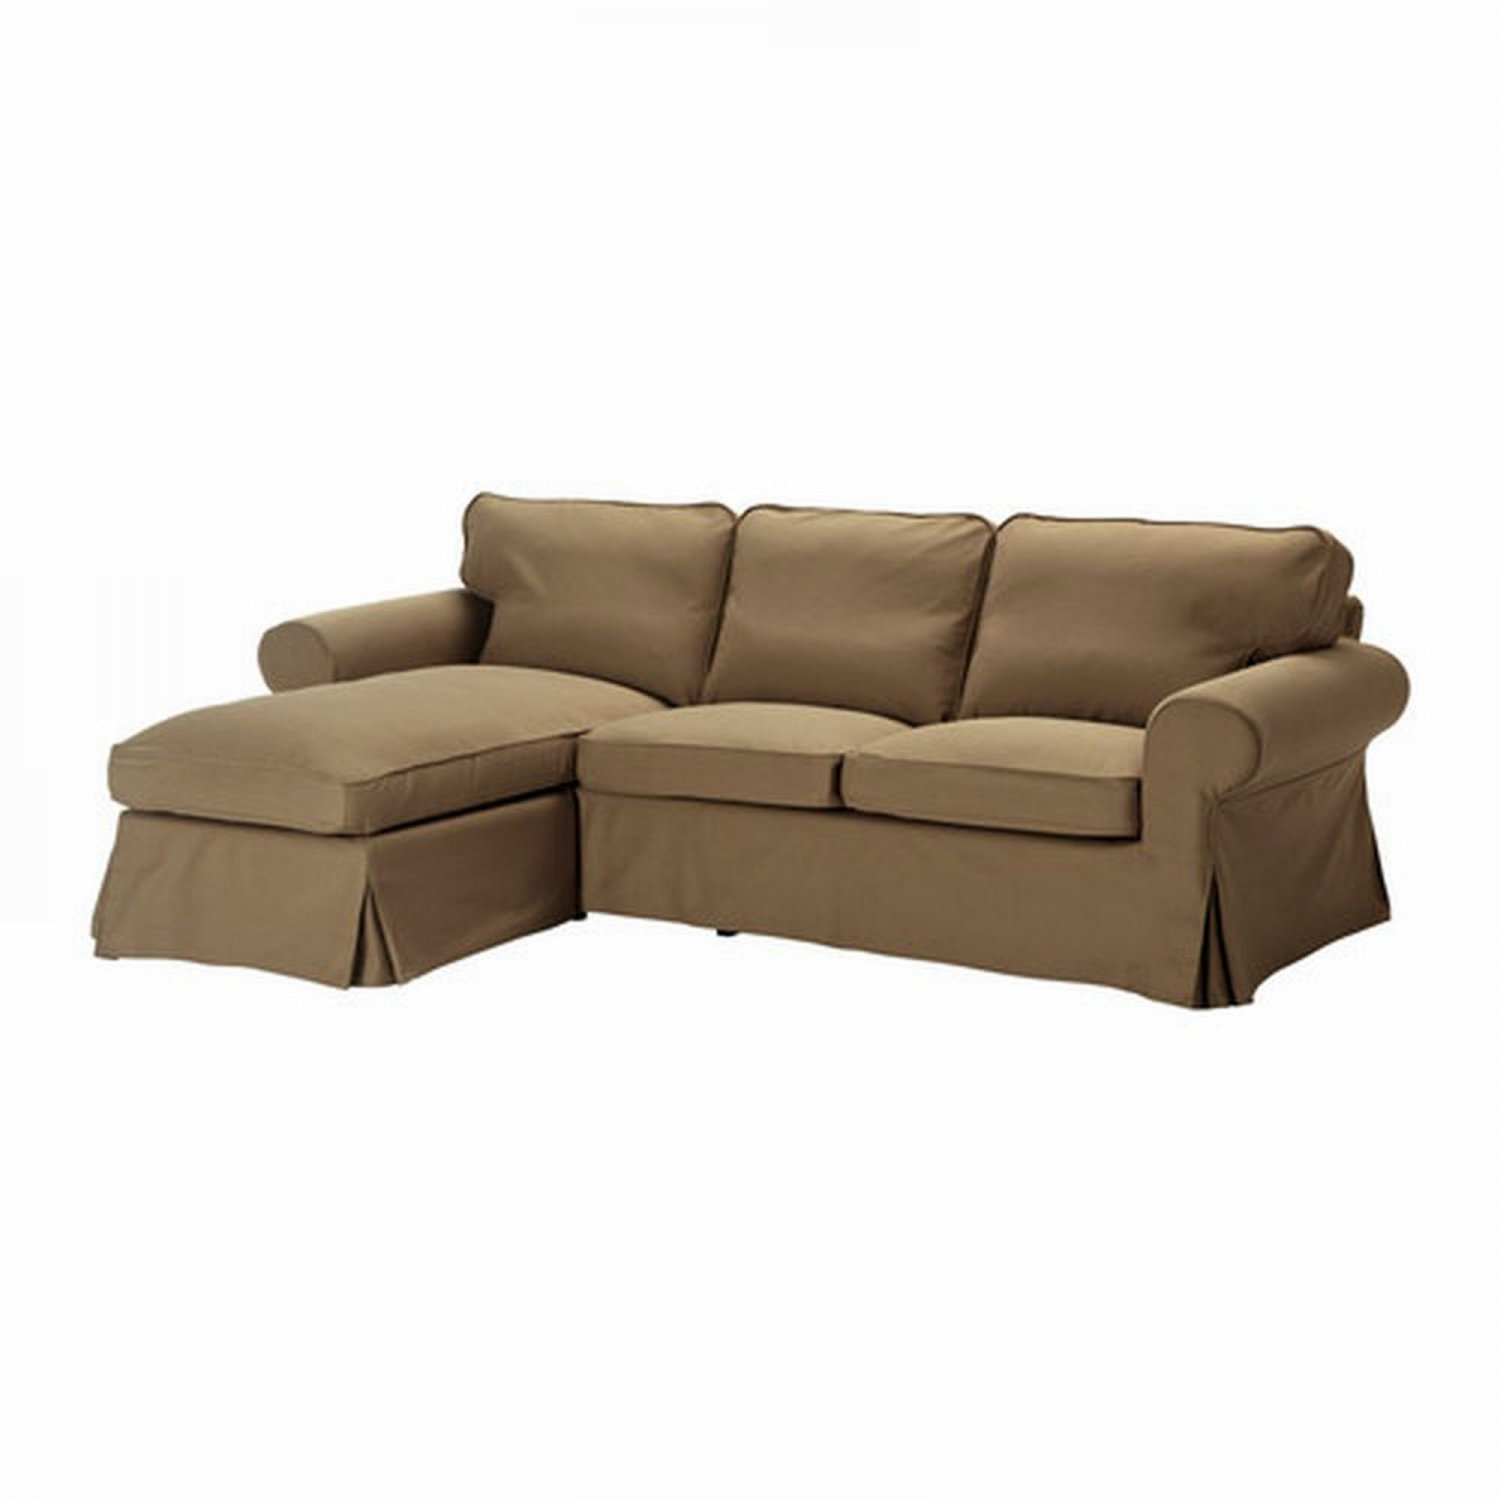 Ikea Ektorp 2 Seat Loveseat Sofa With Chaise Cover Slipcover Idemo Light Brown